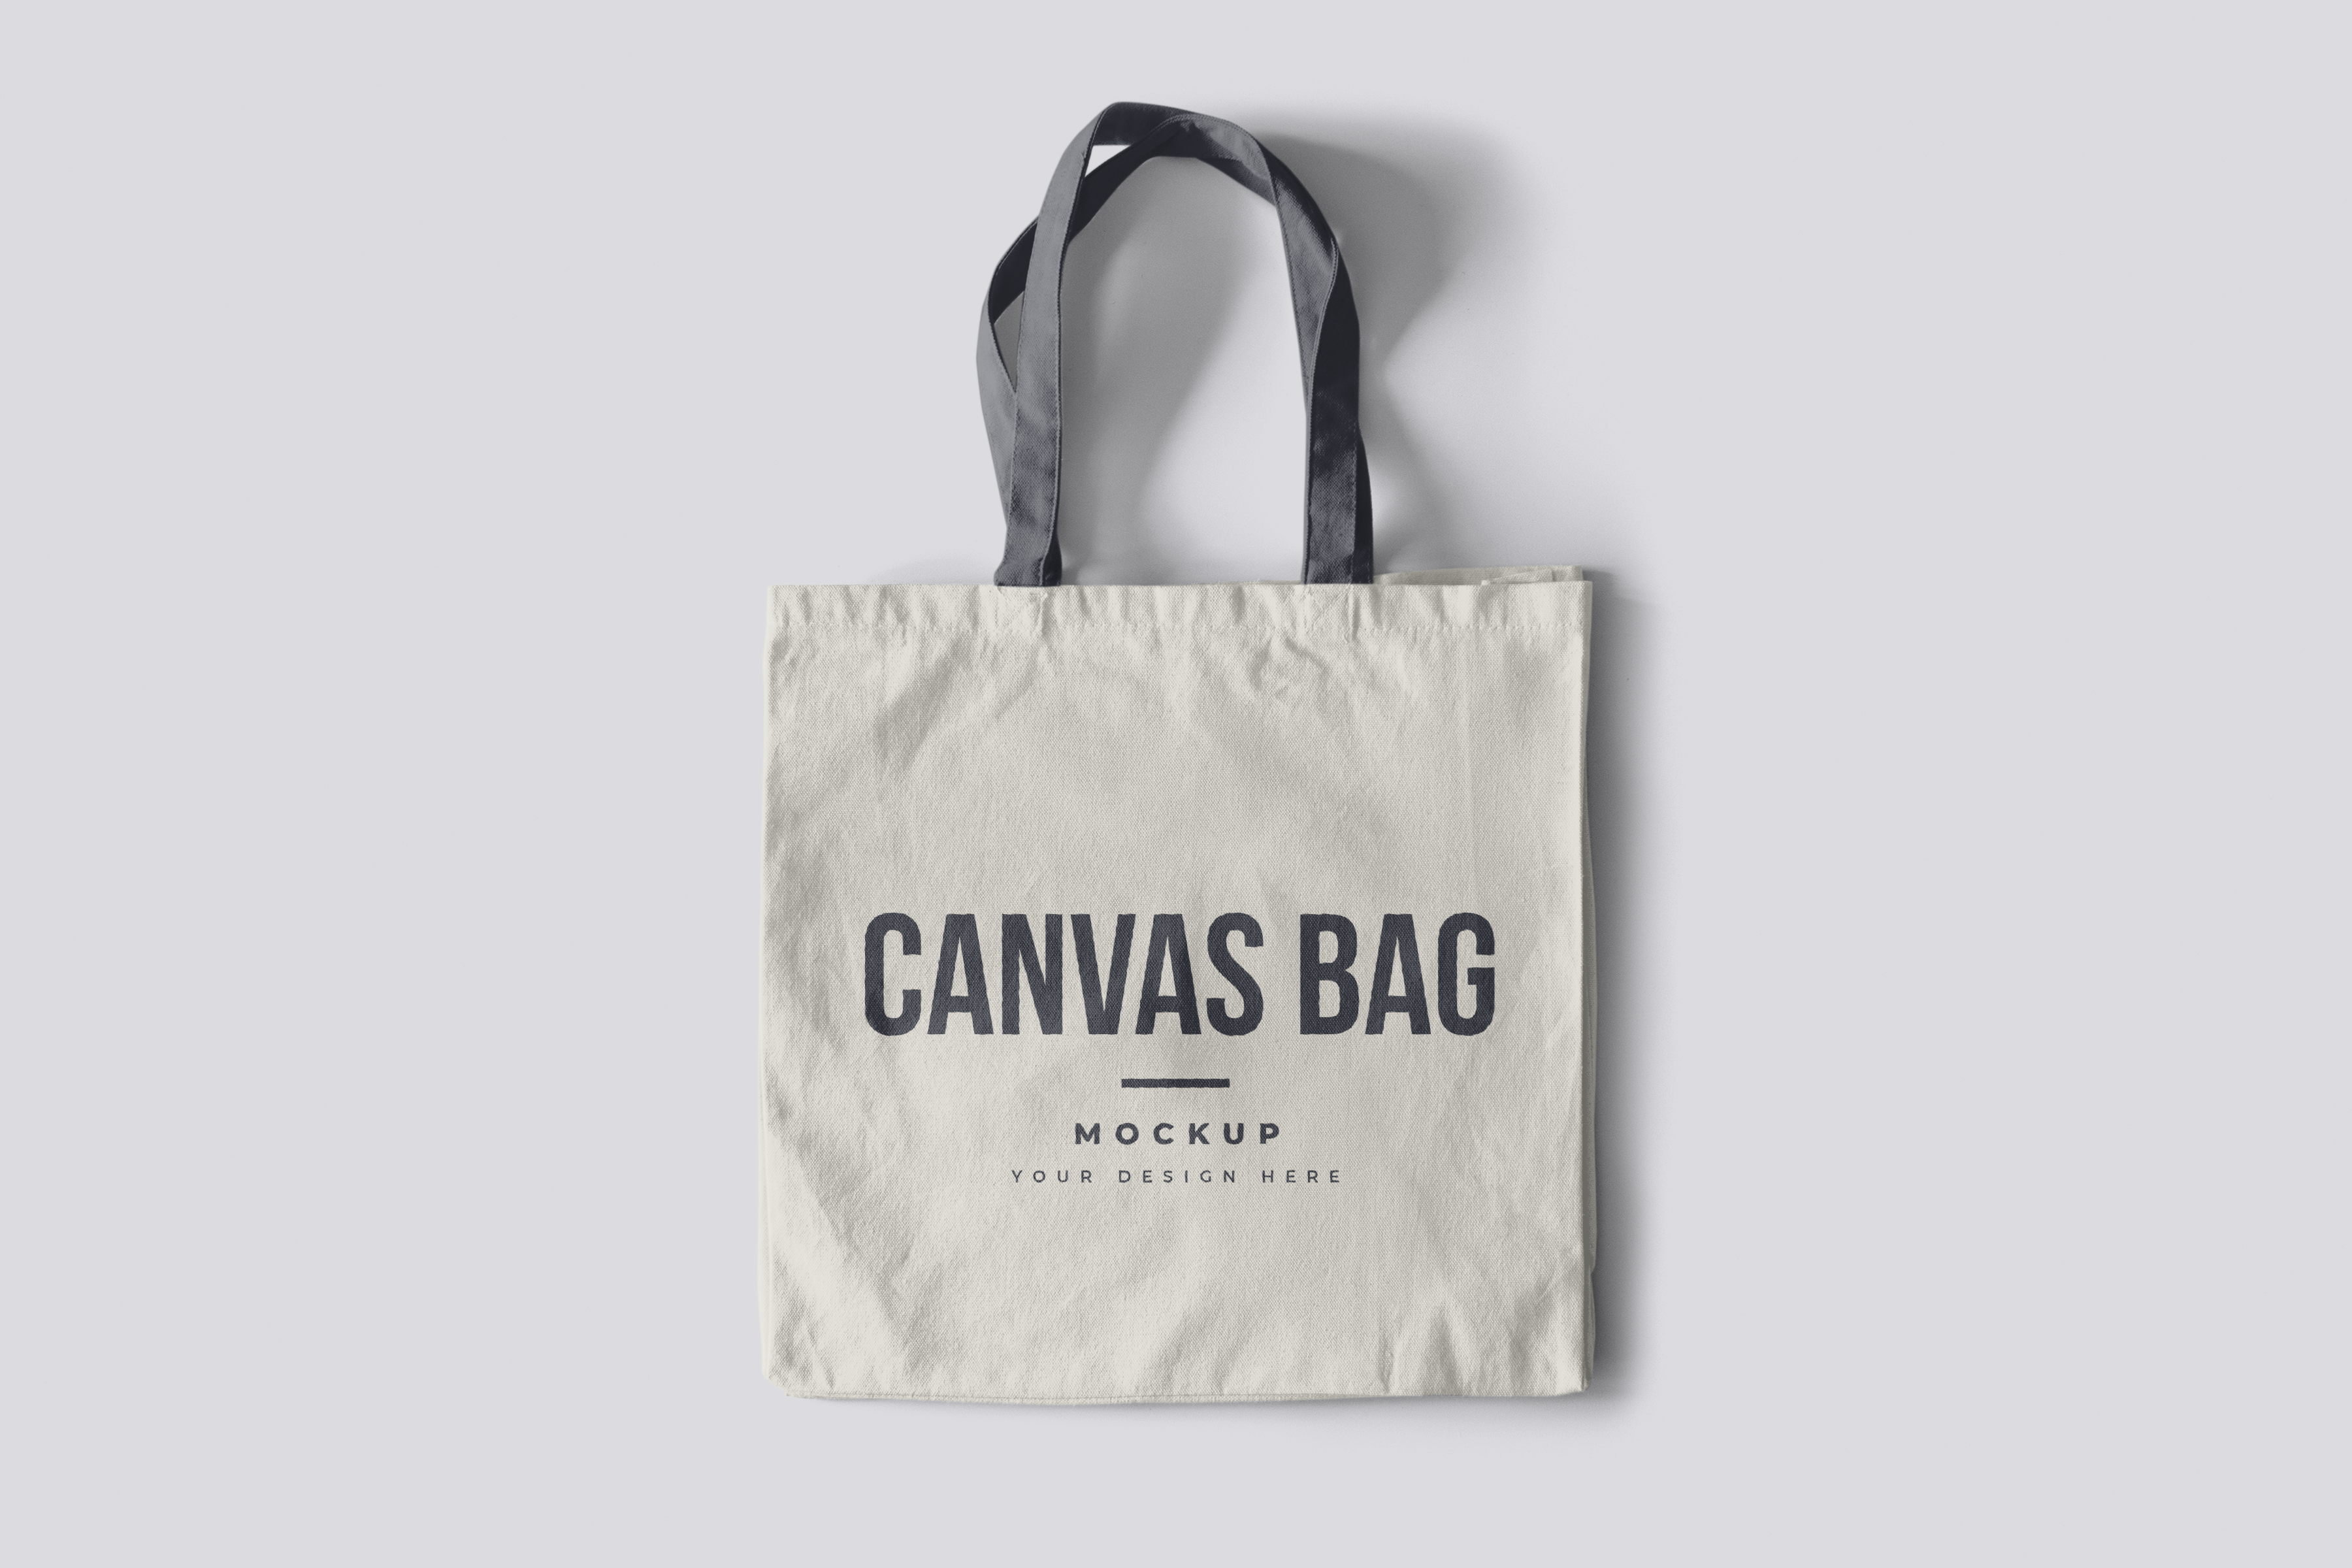 Getting Started with Customized Tote Bags